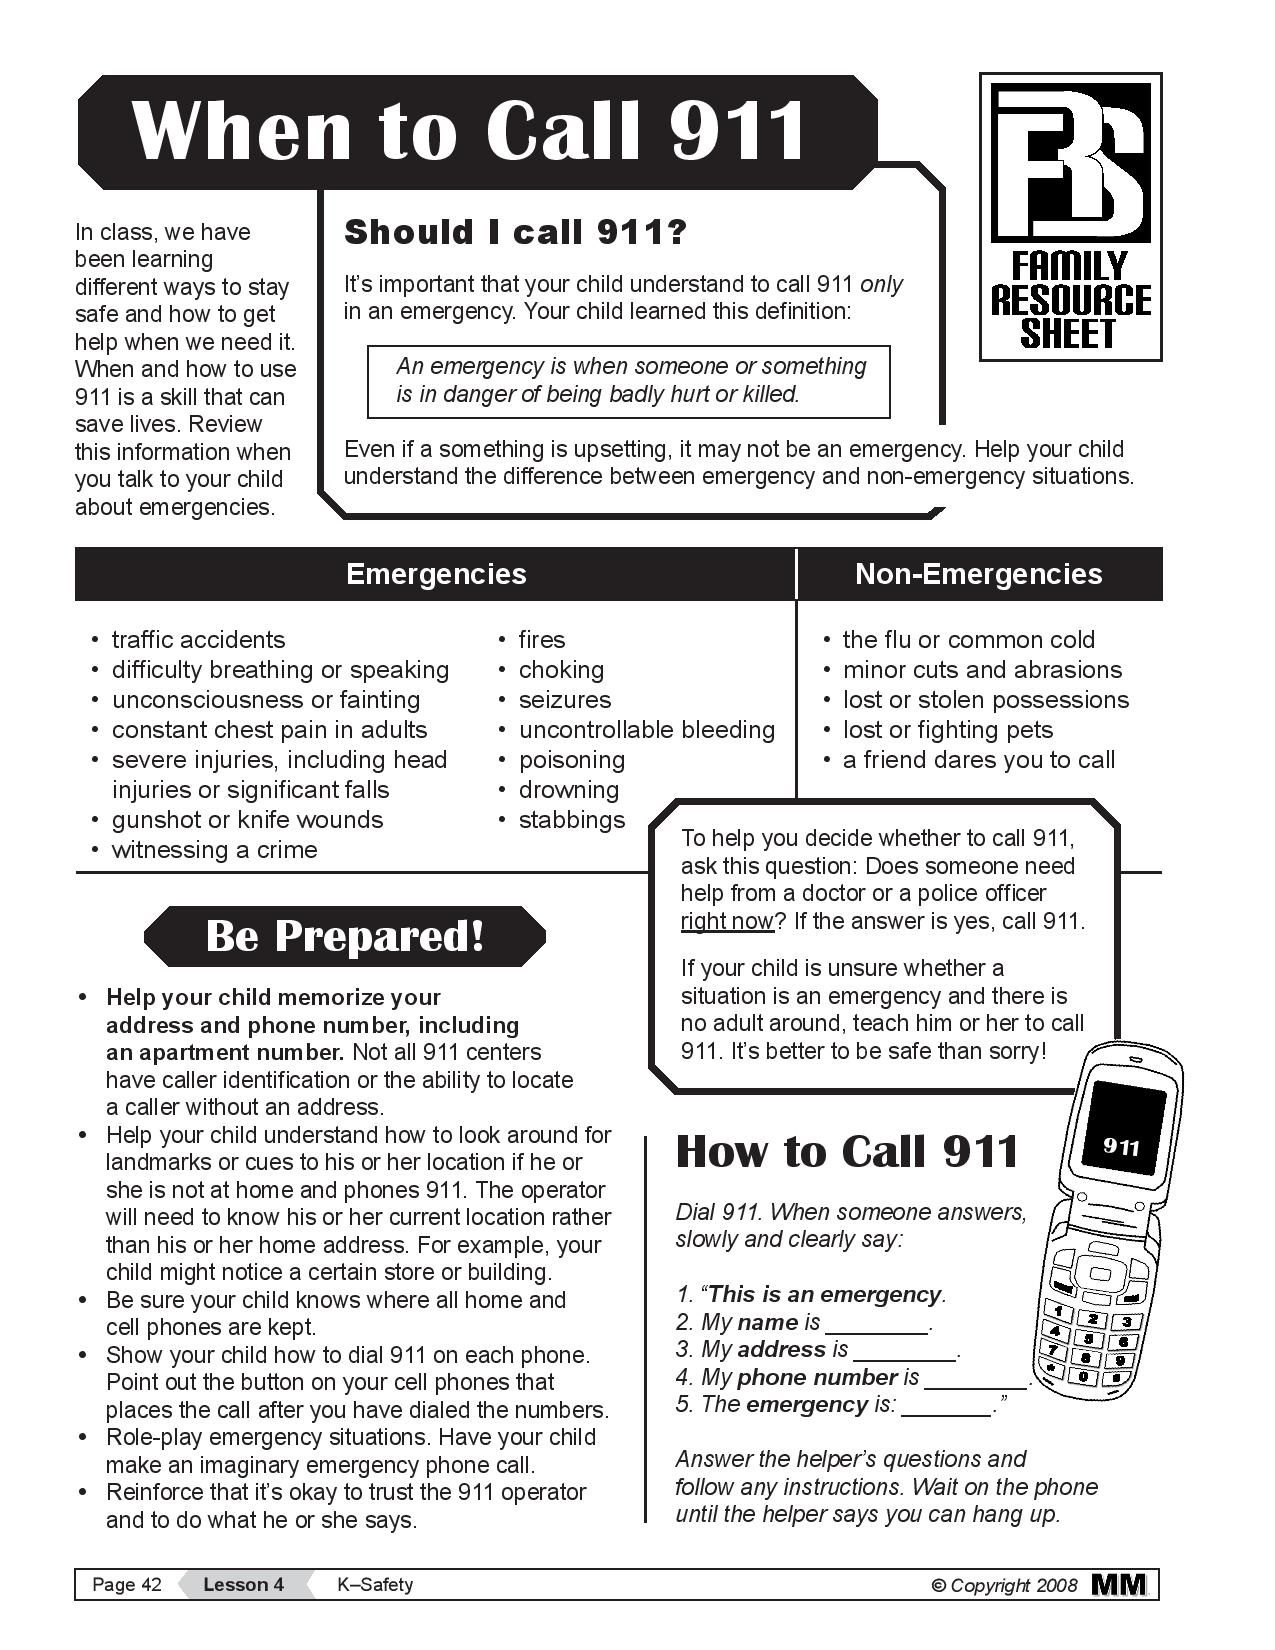 When to Call 911 - Great printout for kids. Keep by the phone in case of emergencies and review ...